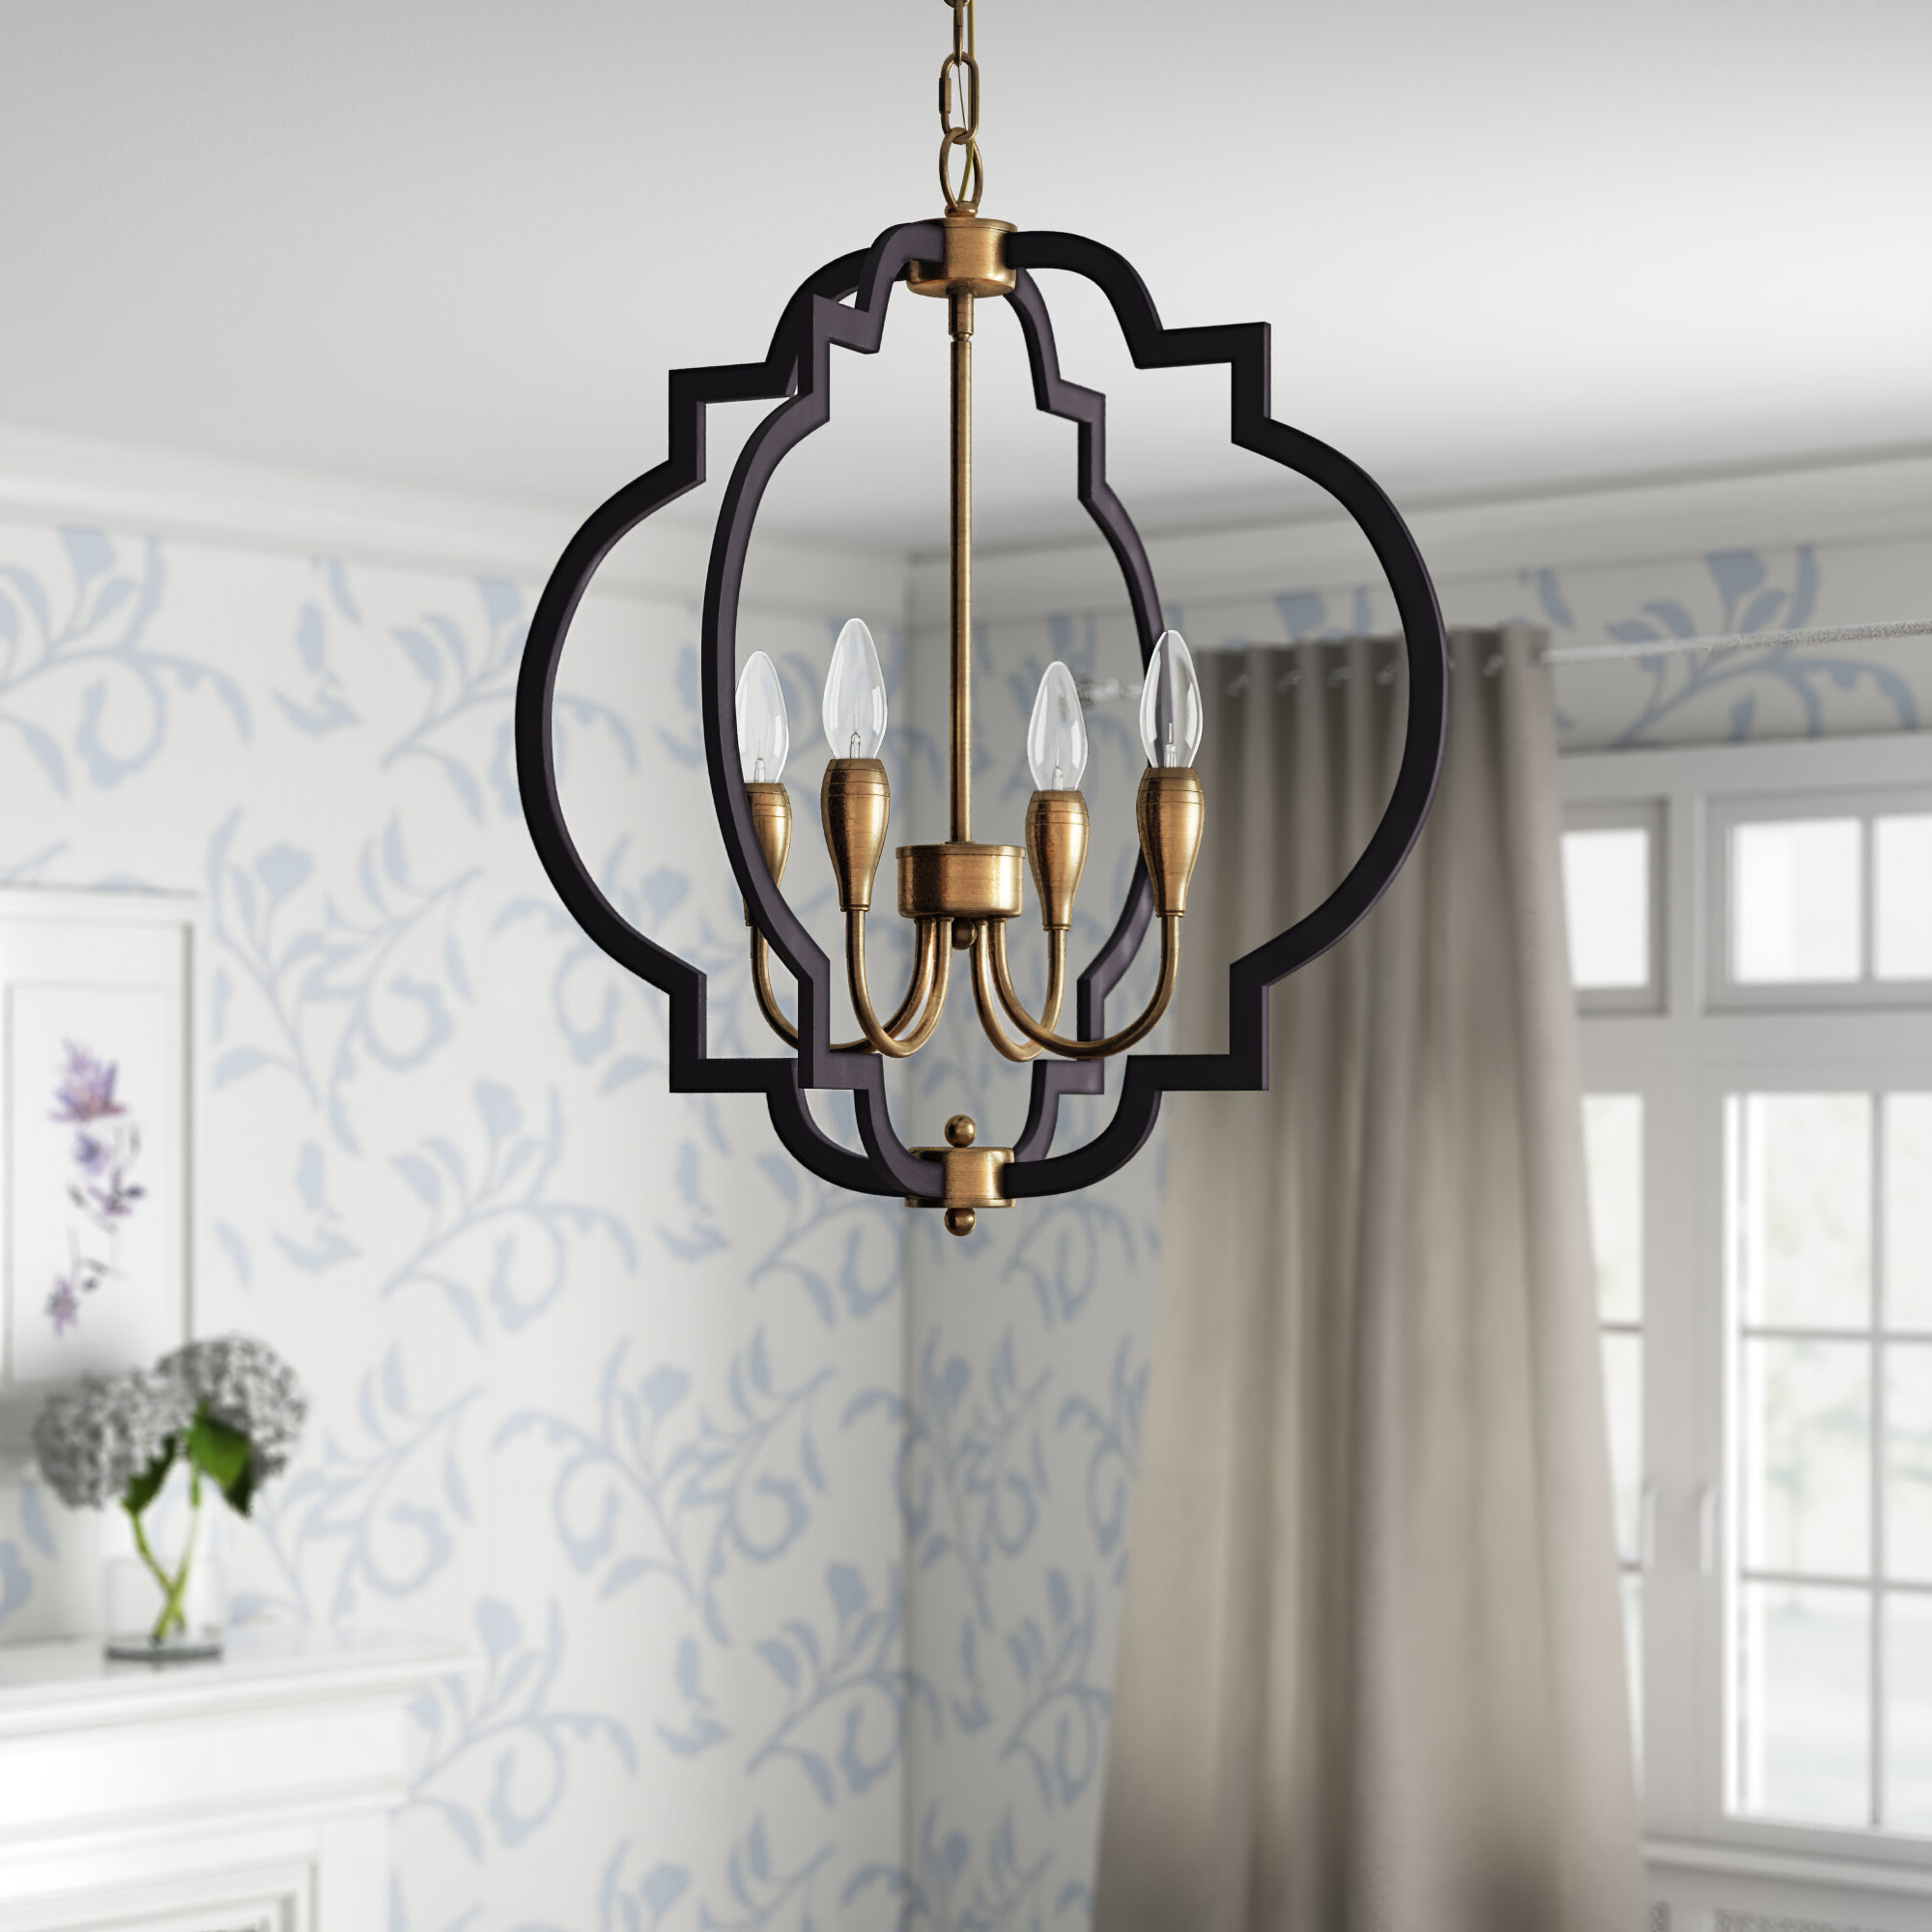 Kaycee 4 Light Geometric Chandeliers With Regard To Favorite Astin 4 Light Geometric Chandelier (View 3 of 25)